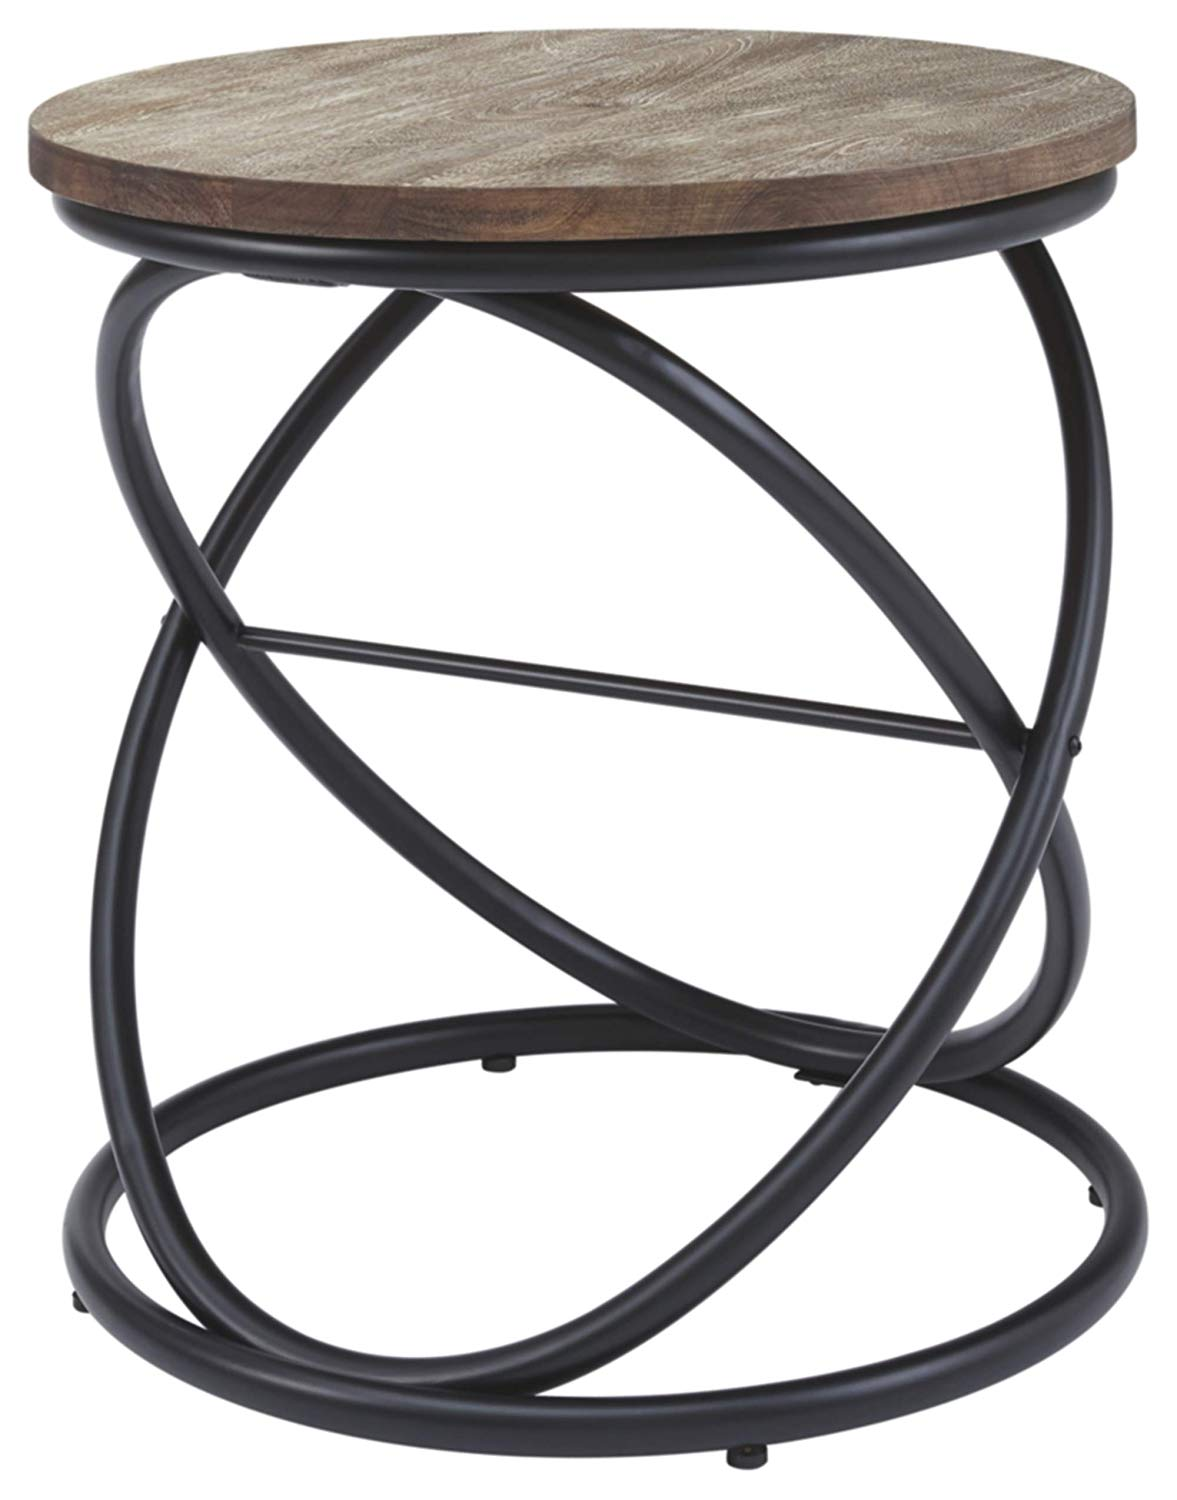 ashley furniture signature design charliburi brown round end table contemporary black kitchen dining mainstays drawer chest instruction manual patio kmart clearance creative dog